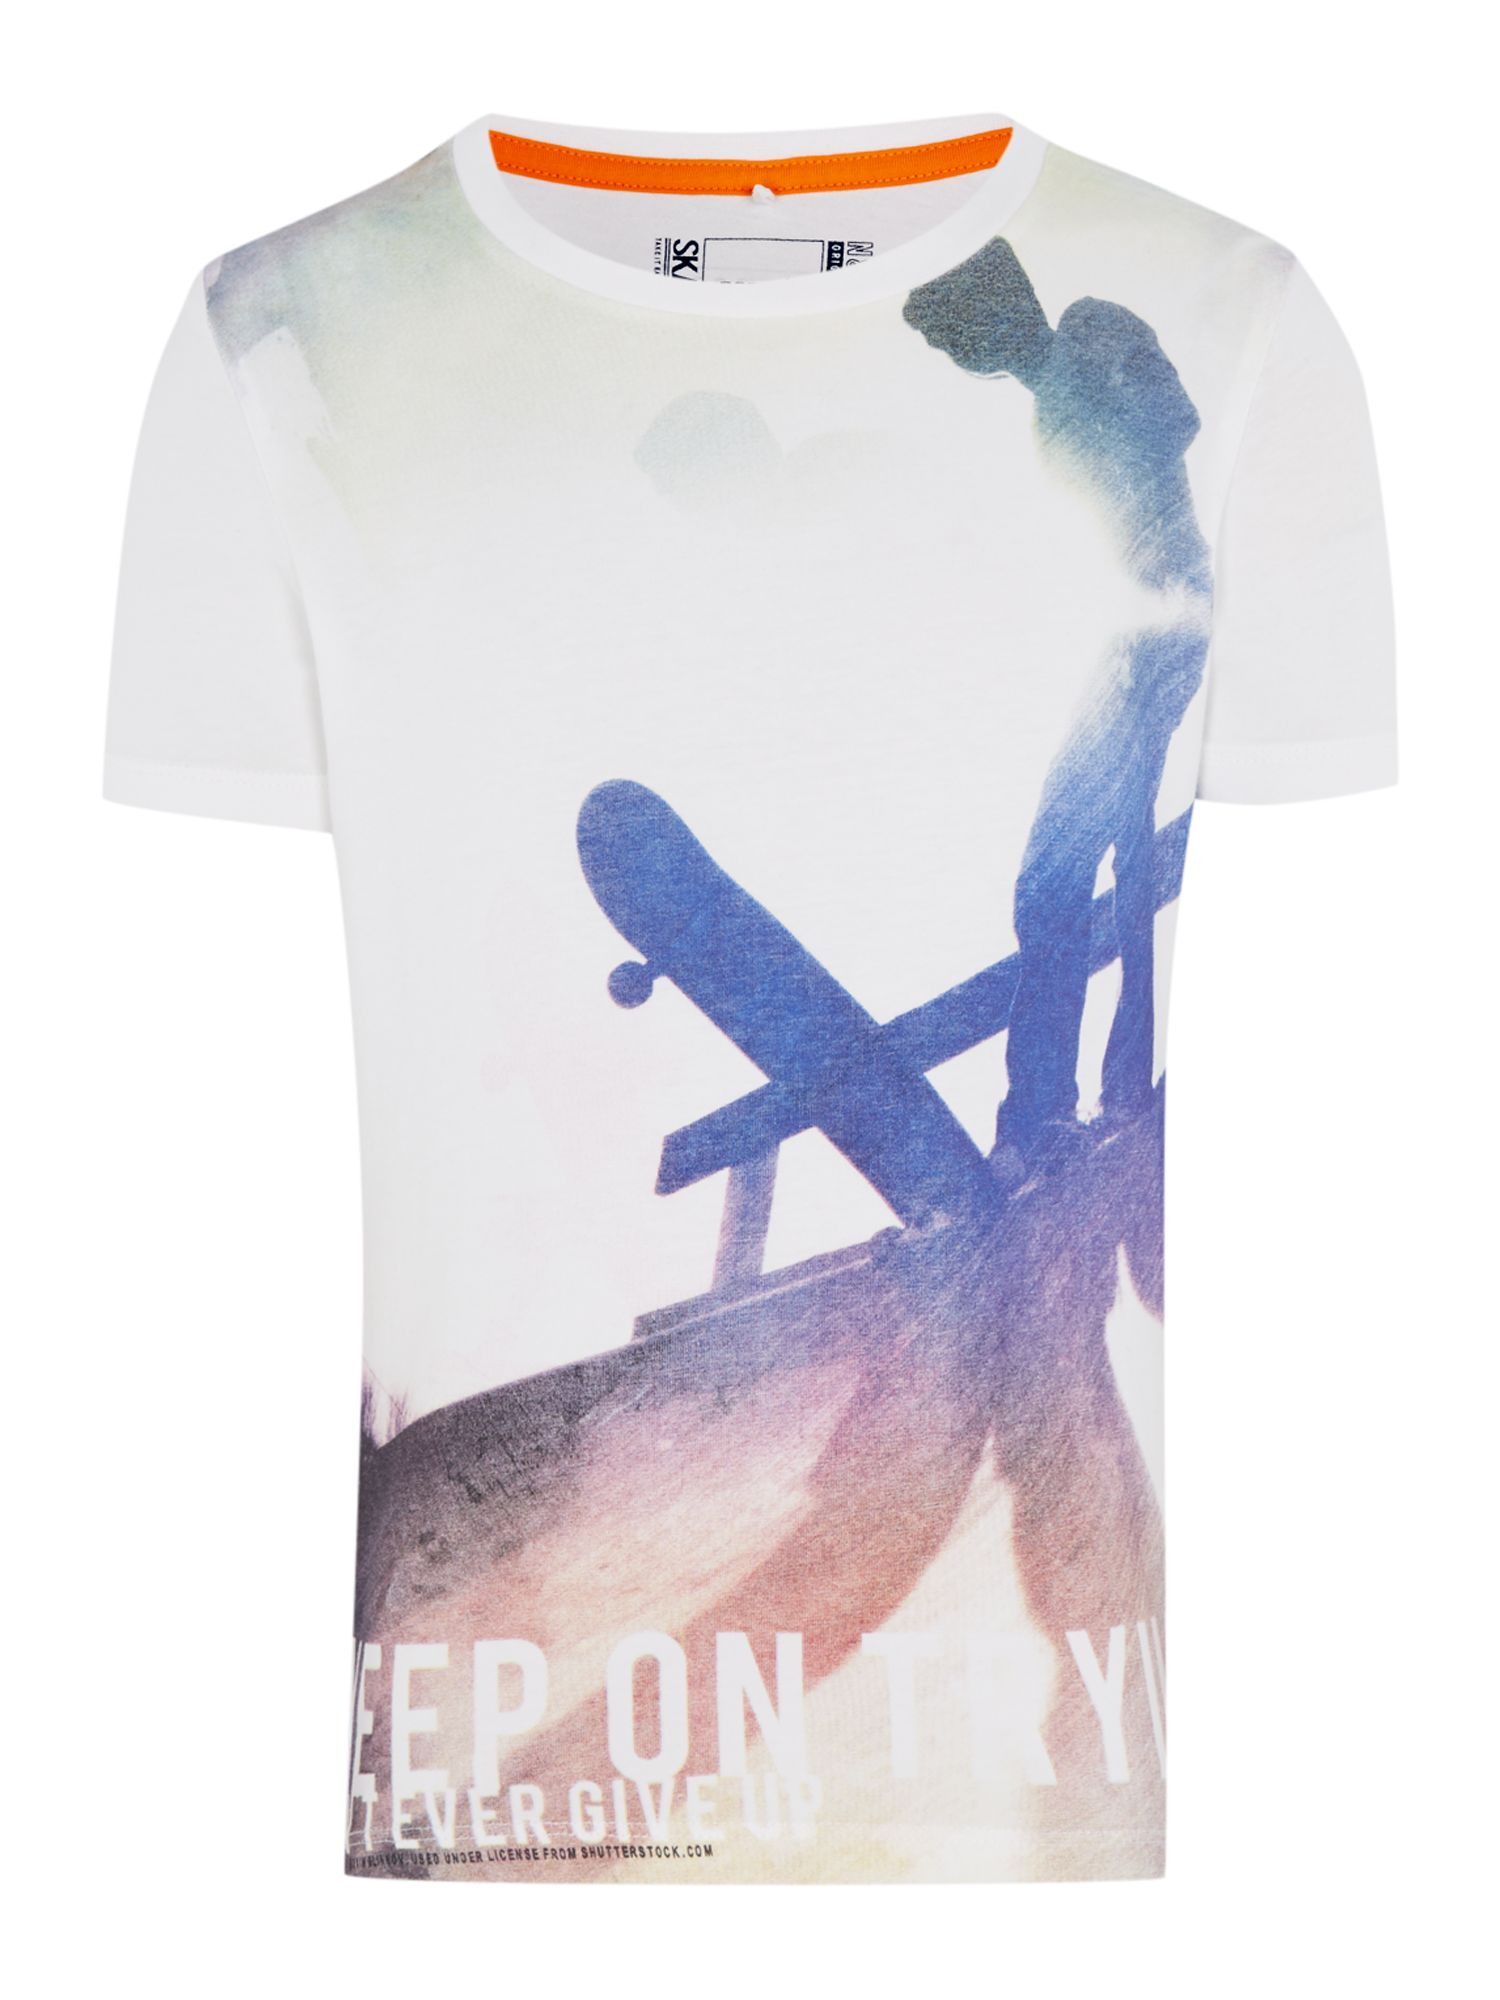 Boys skate graphic print t-shirt